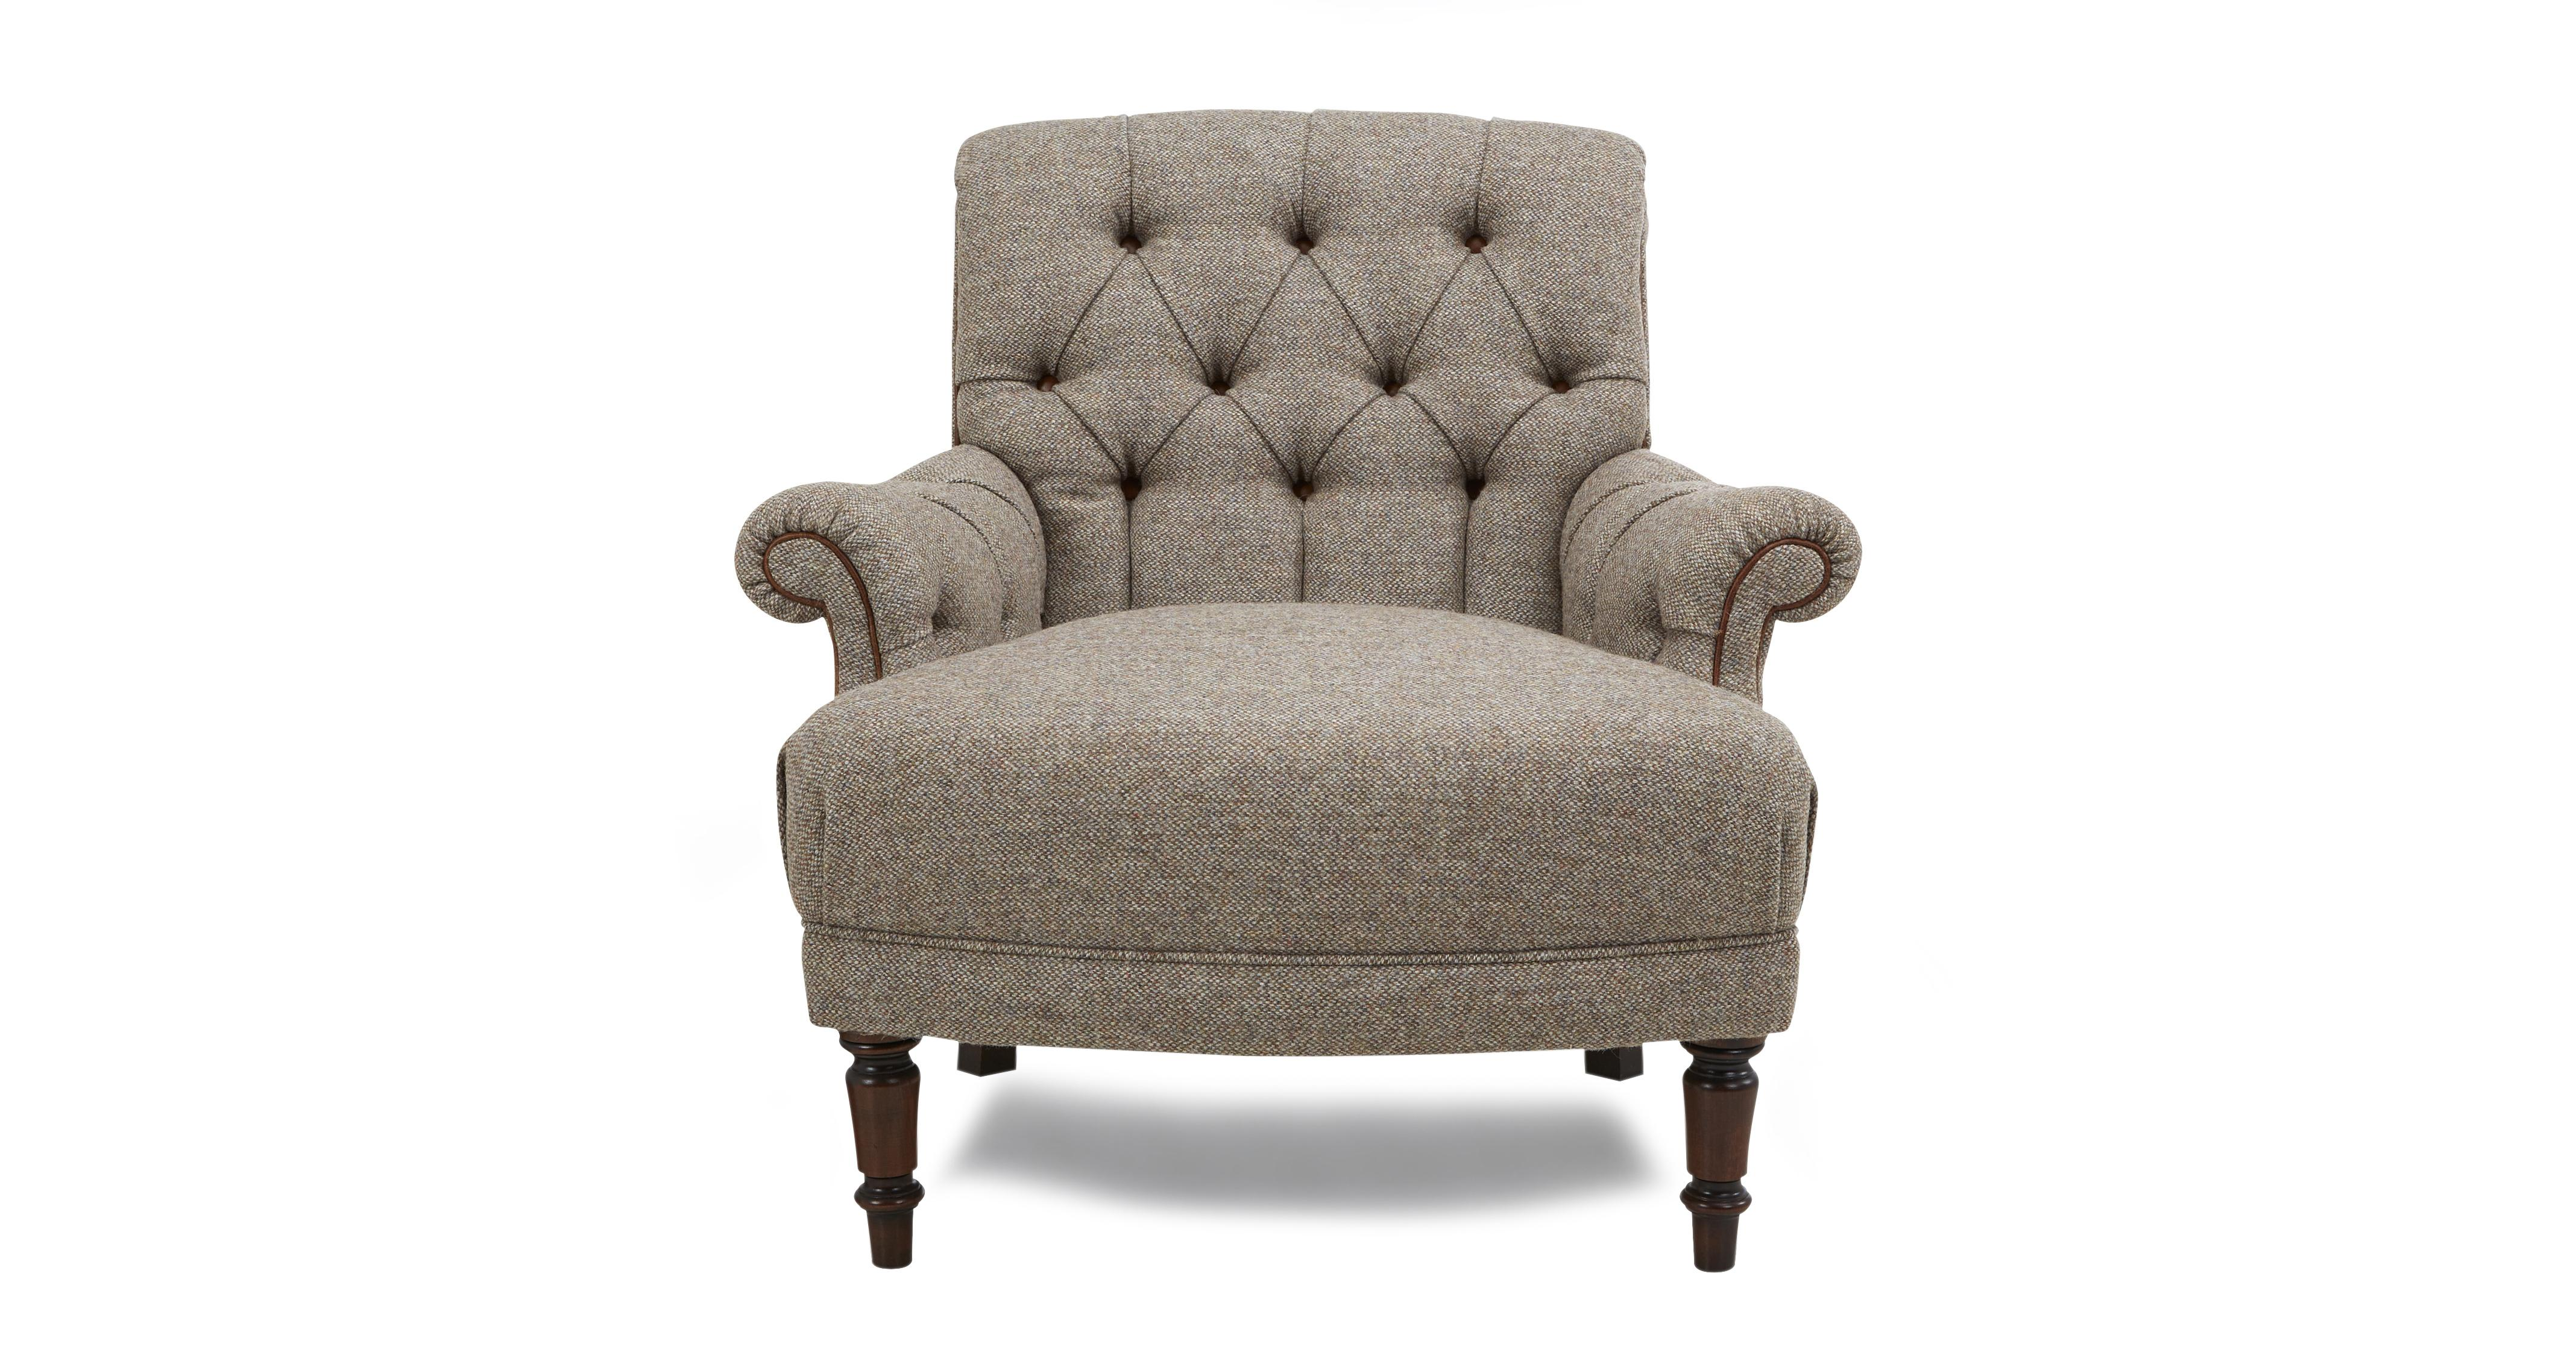 swivel chair ireland x back chairs white kintyre accent harris tweed dfs